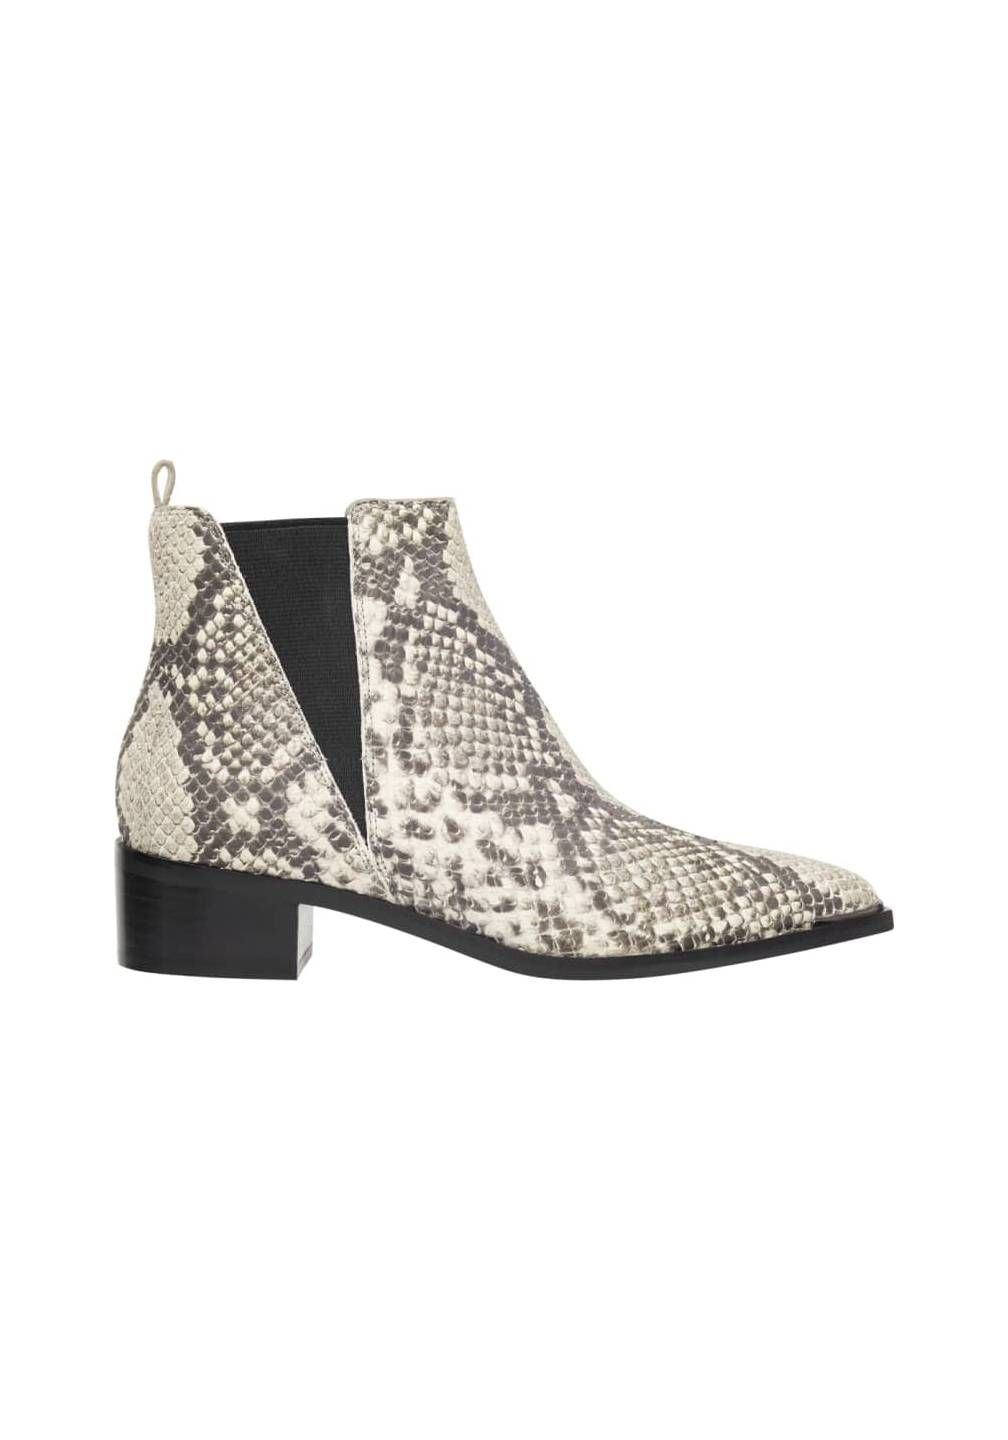 dc4fcf34e51 These 3 Ankle Boots Are Rated as the Most Comfortable | Feet ...